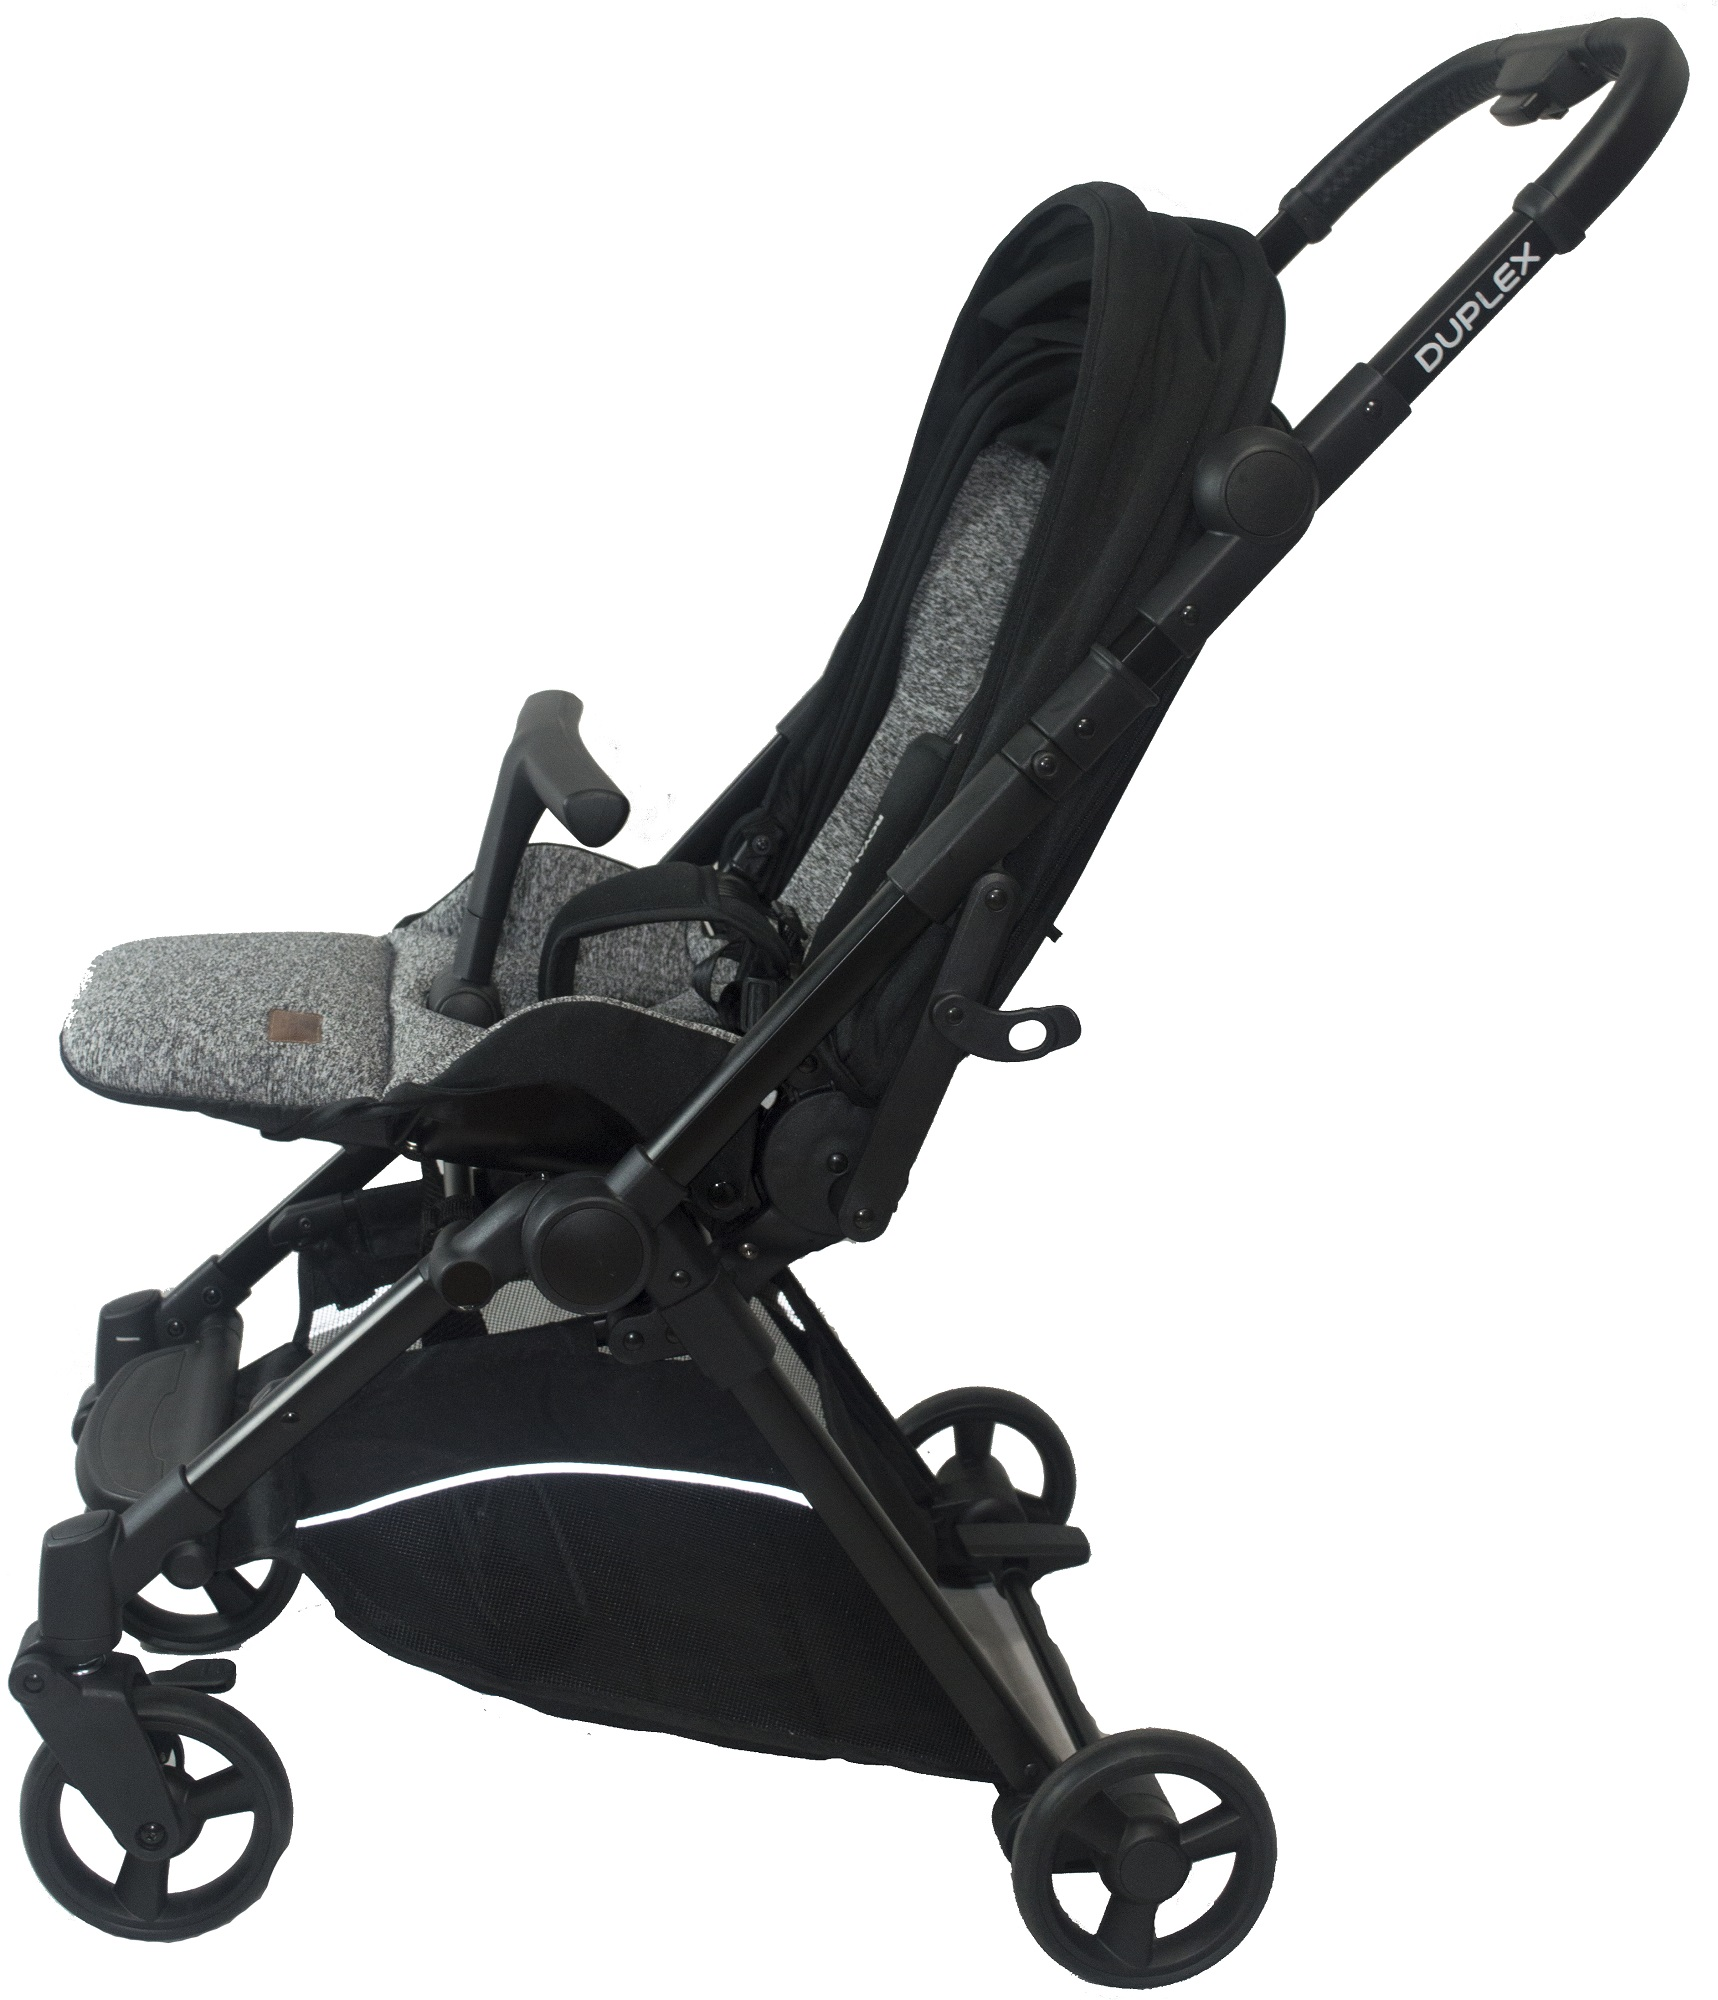 Royal Kiddy London Duplex Compact Double Facing Stroller Grey with FREE Travelling Bag, Mosquito Net and Rain Cover